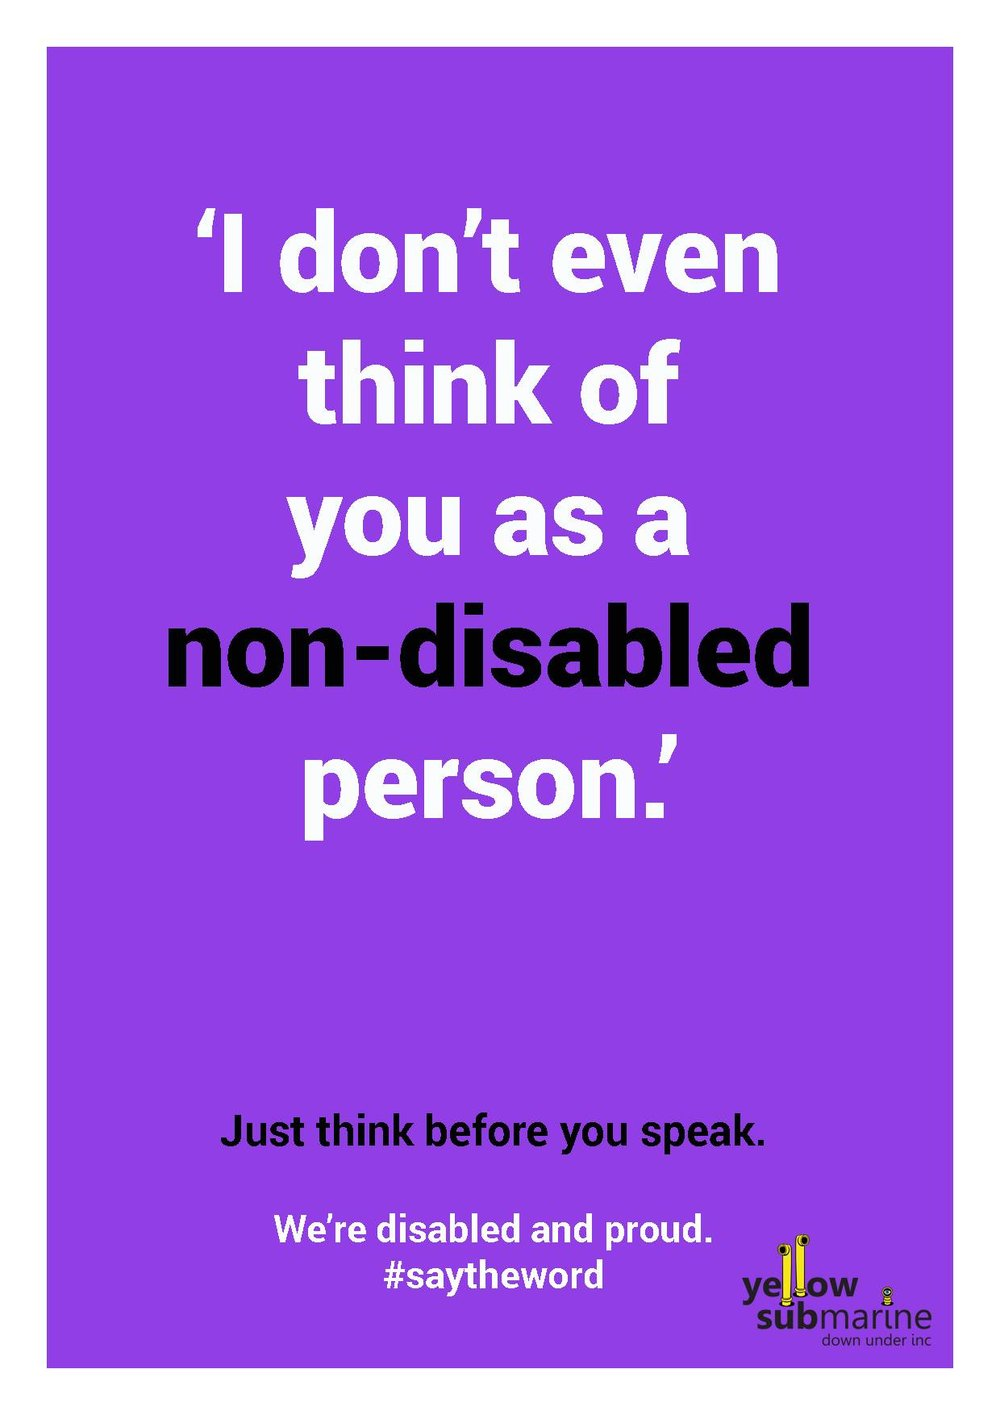 A poster with the words 'I don't even think of you as a non-disabled person' on a purple background